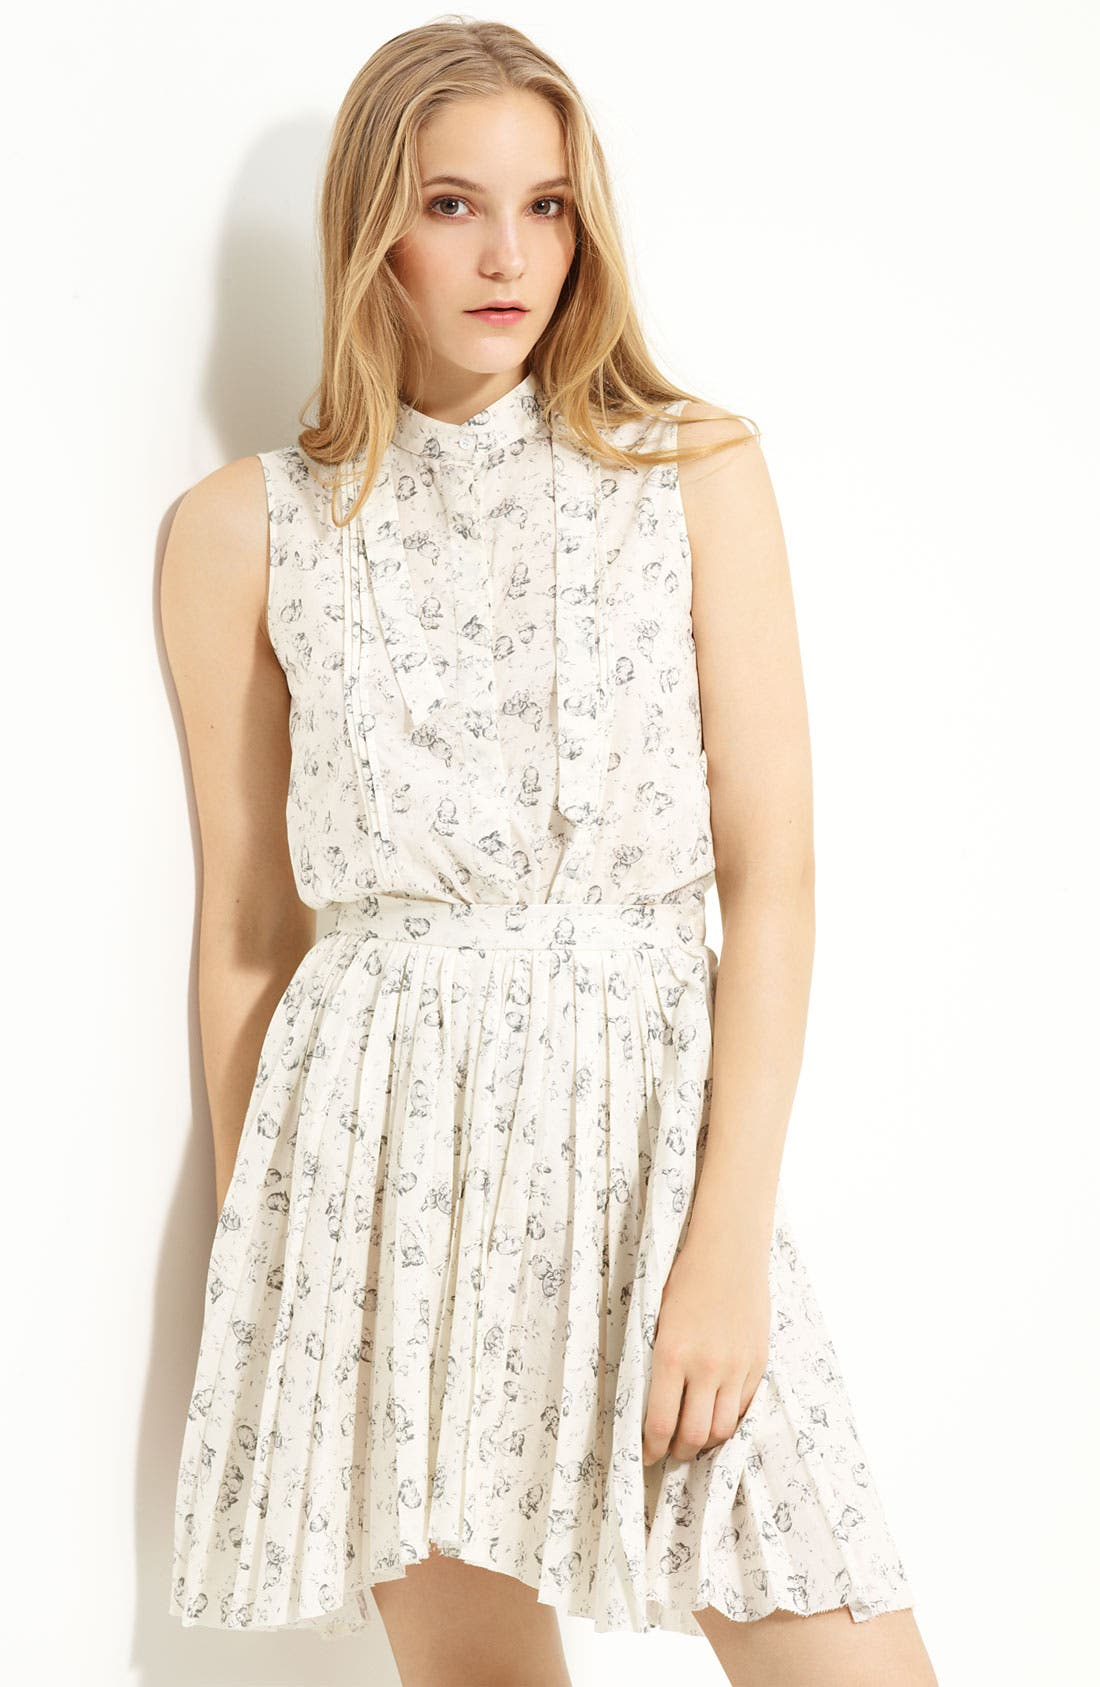 BOY. BY BAND OF OUTSIDERS Band of Outsiders Rabbit Print Sleeveless Top, Main, color, 110